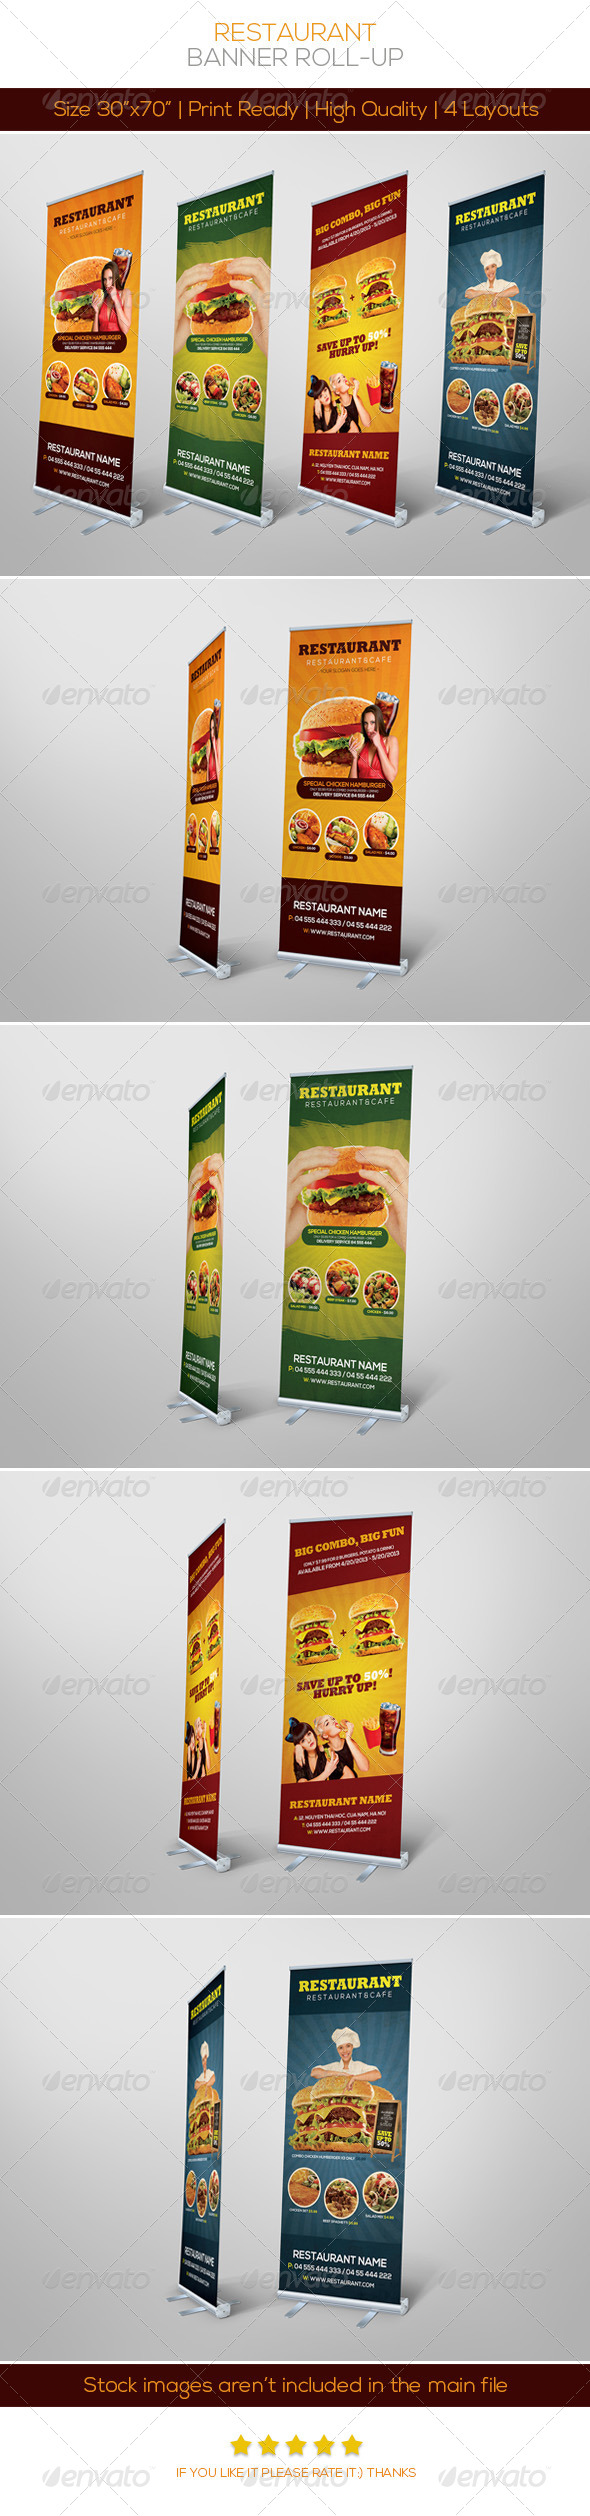 Premium Restaurant Banner Roll-up - Signage Print Templates